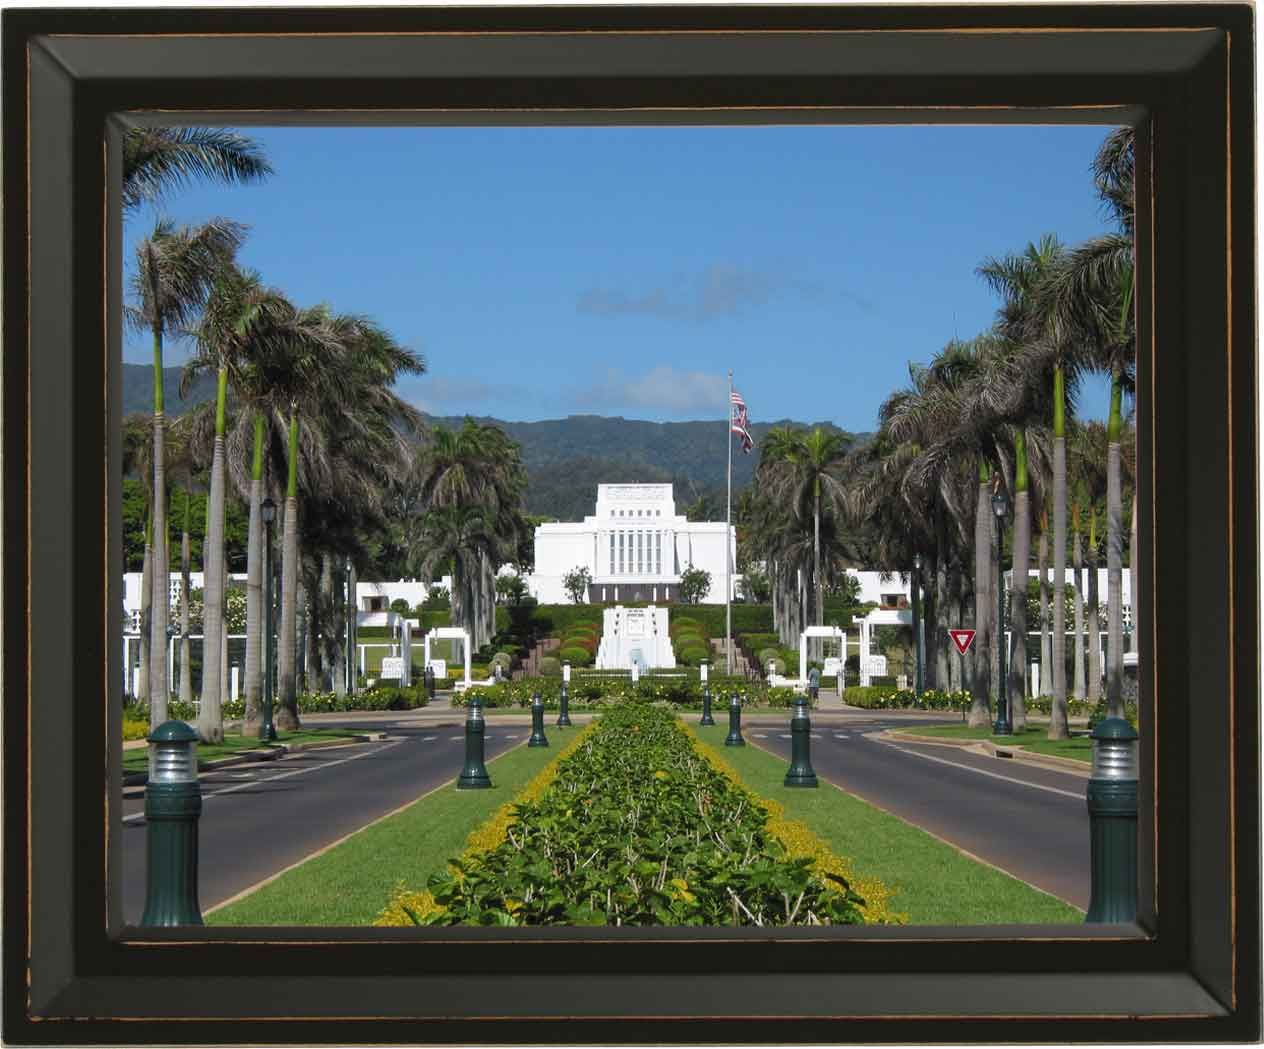 Framed Temple Picture $149 Laie, Hawaii Temple | Framed LDS Temples ...